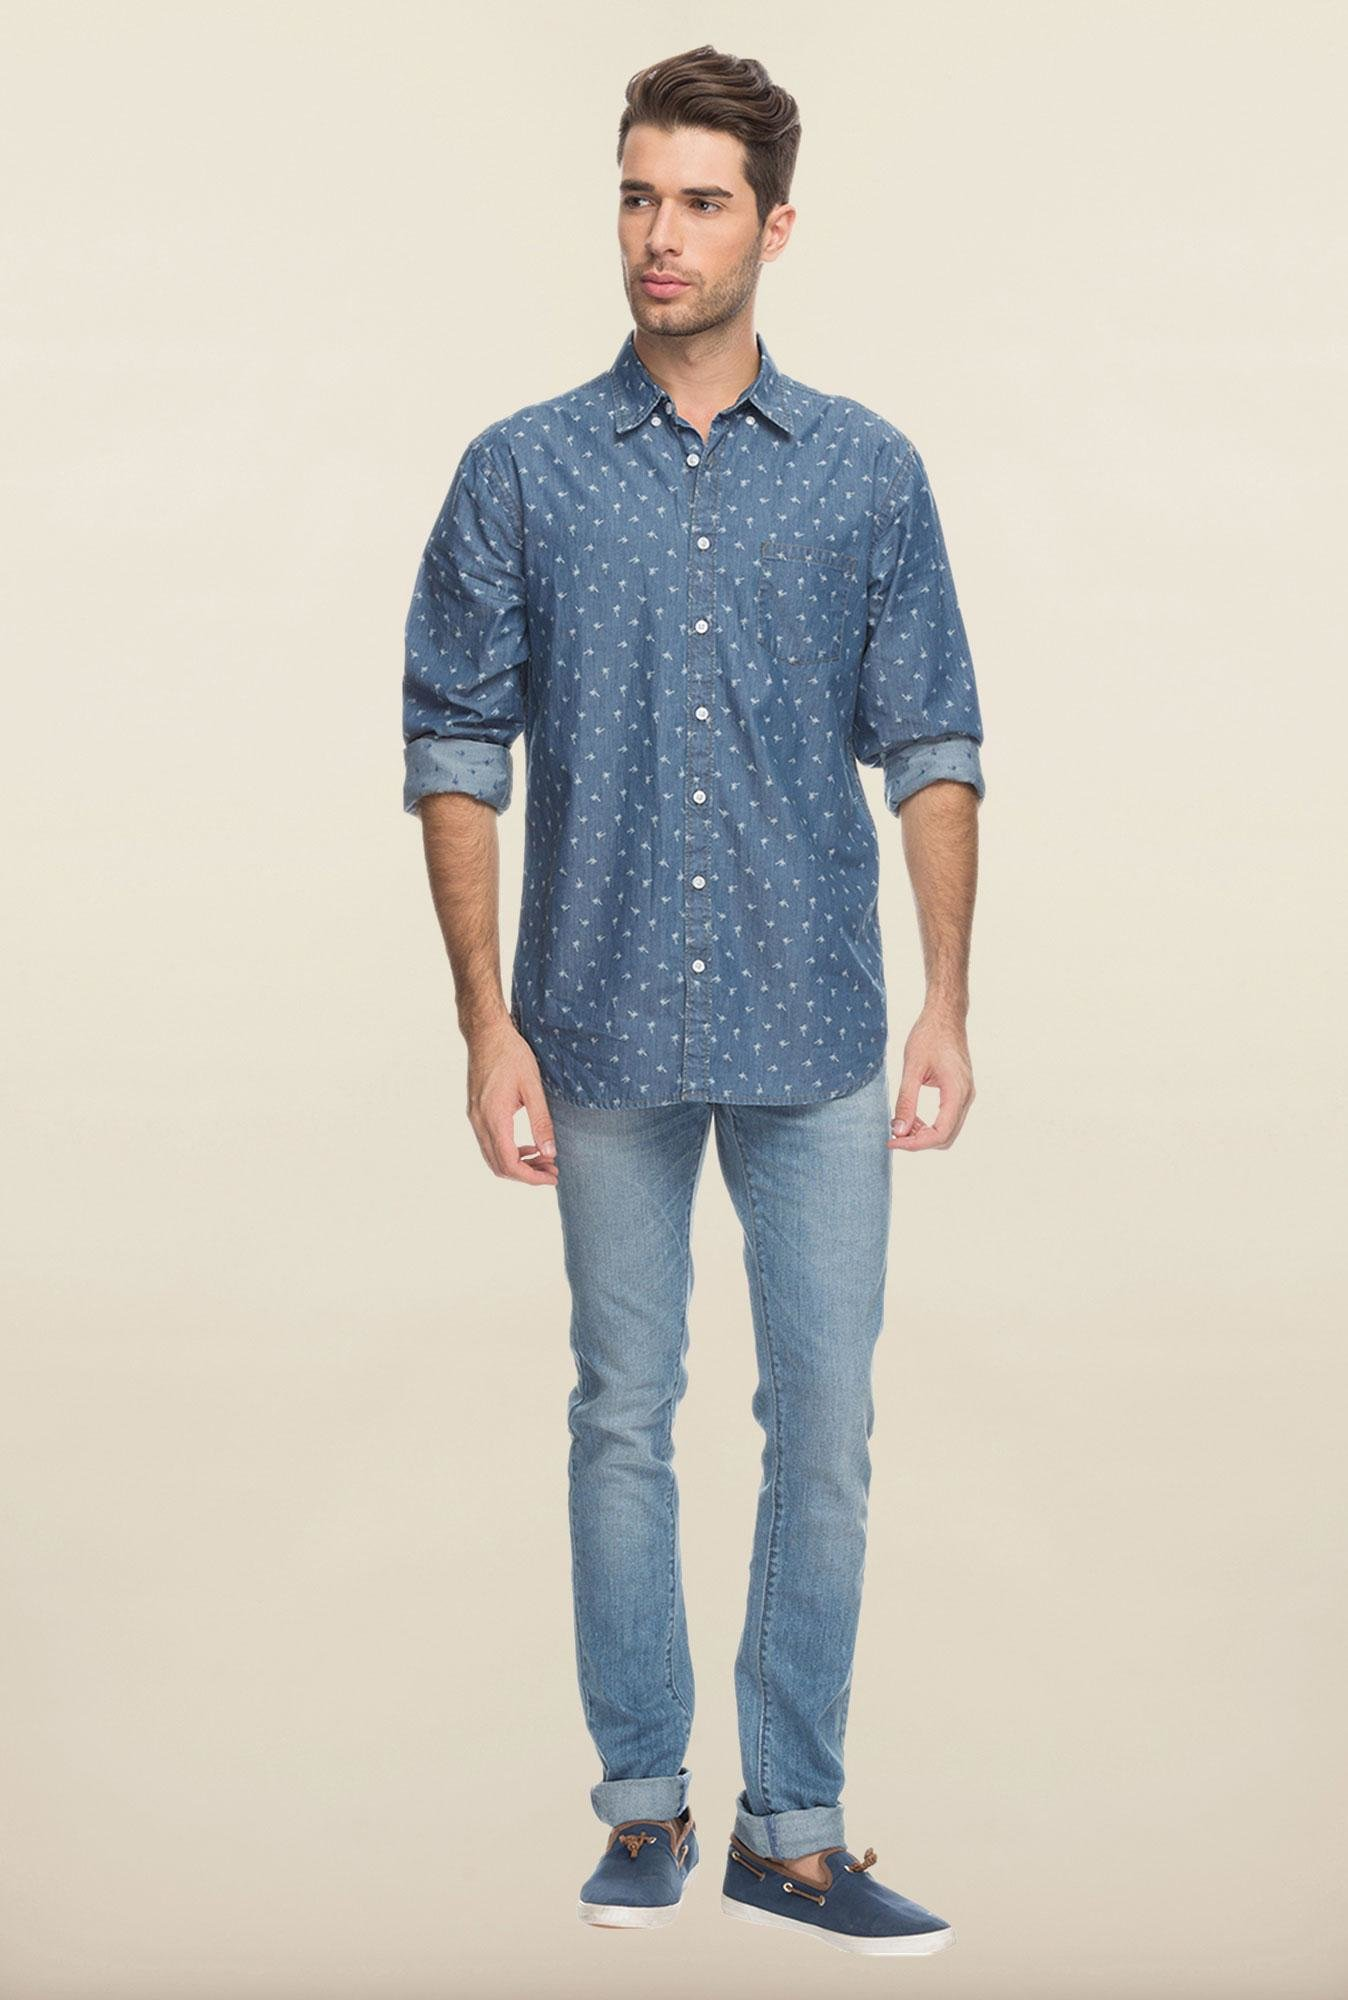 Cottonworld Blue Printed Casual Shirt